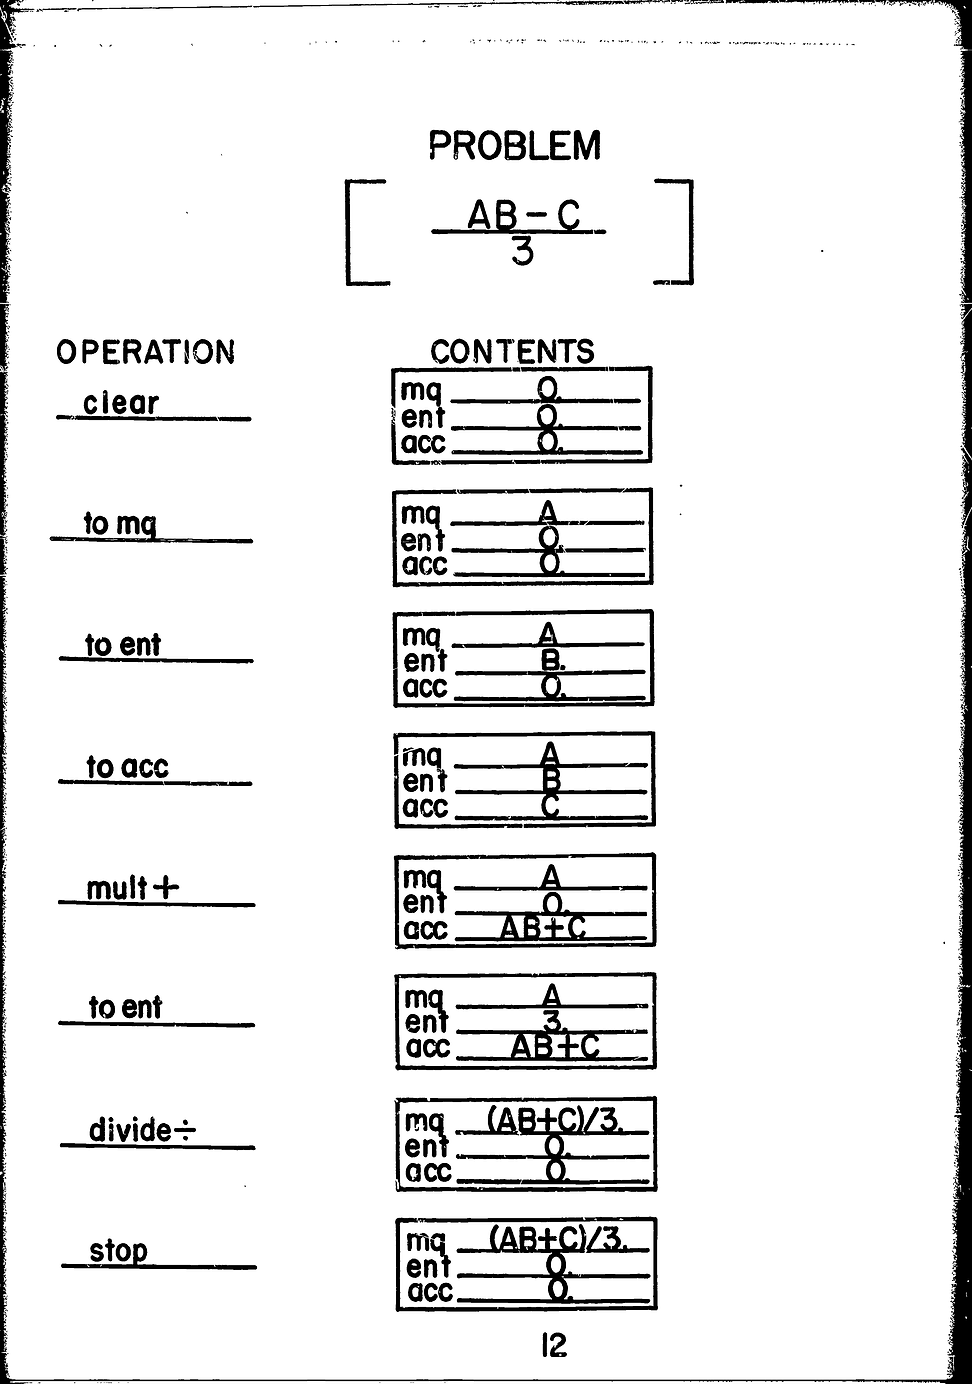 WYLE Instruction_Page_100_Image_0001.tif